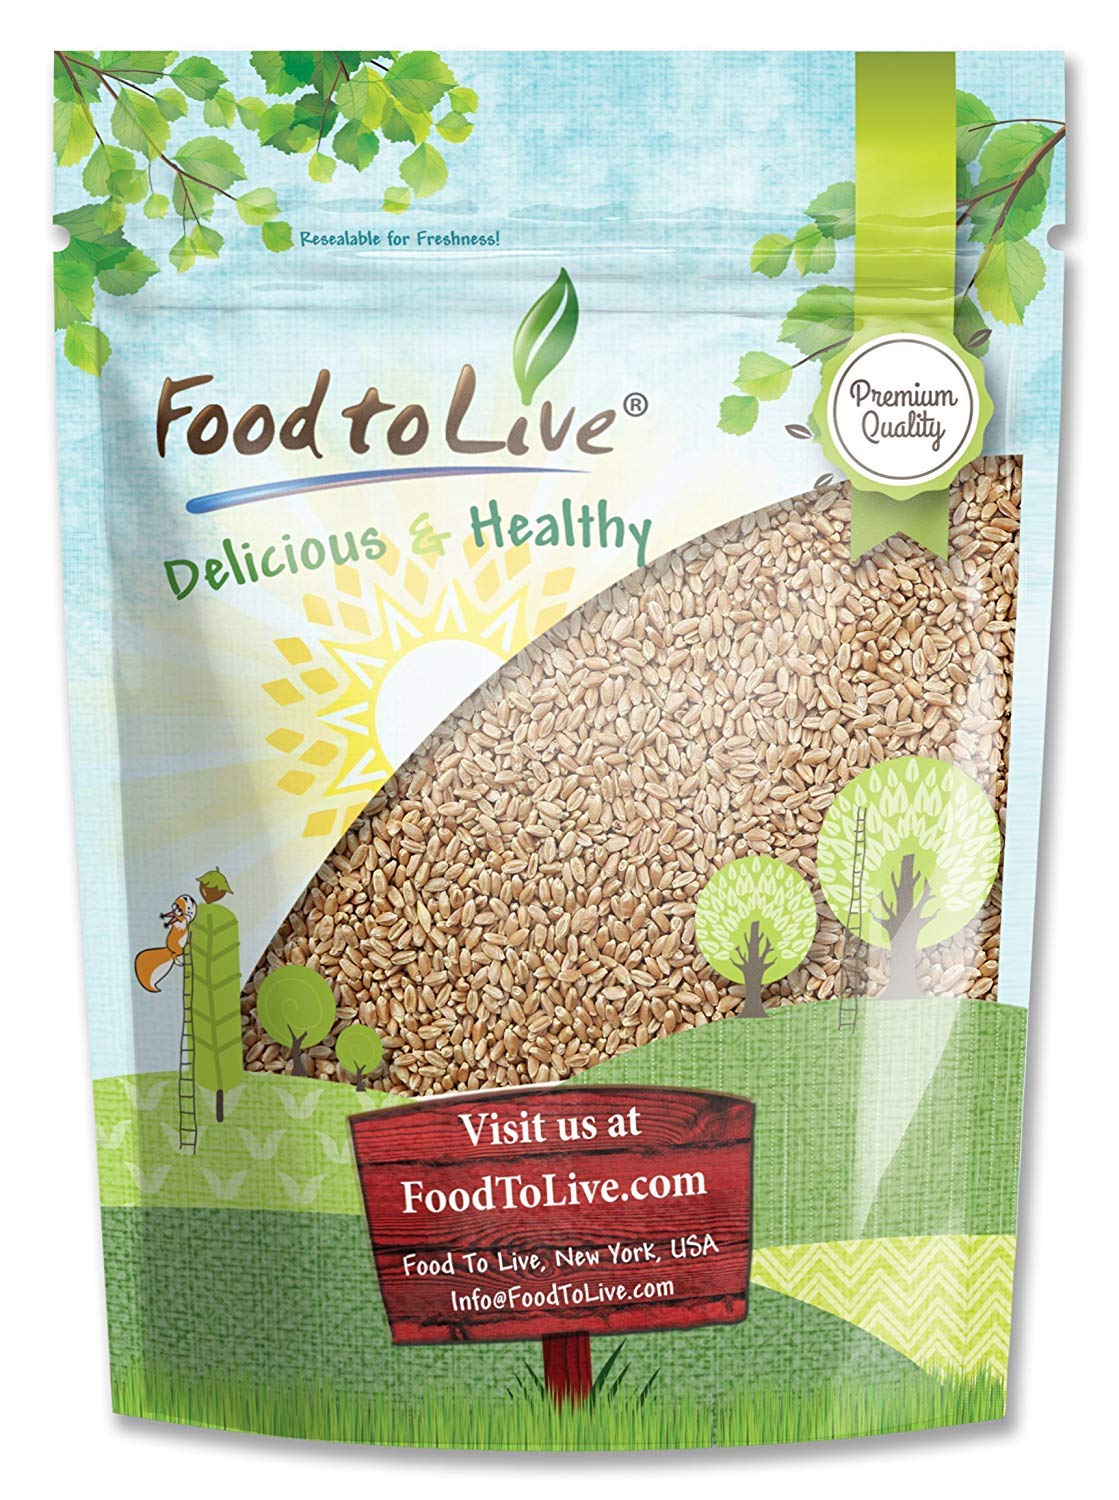 Wheat Berries, 1 Pound - Seeds for Sprouting, Wheatgrass, Bulk, Kosher, by Food to Live